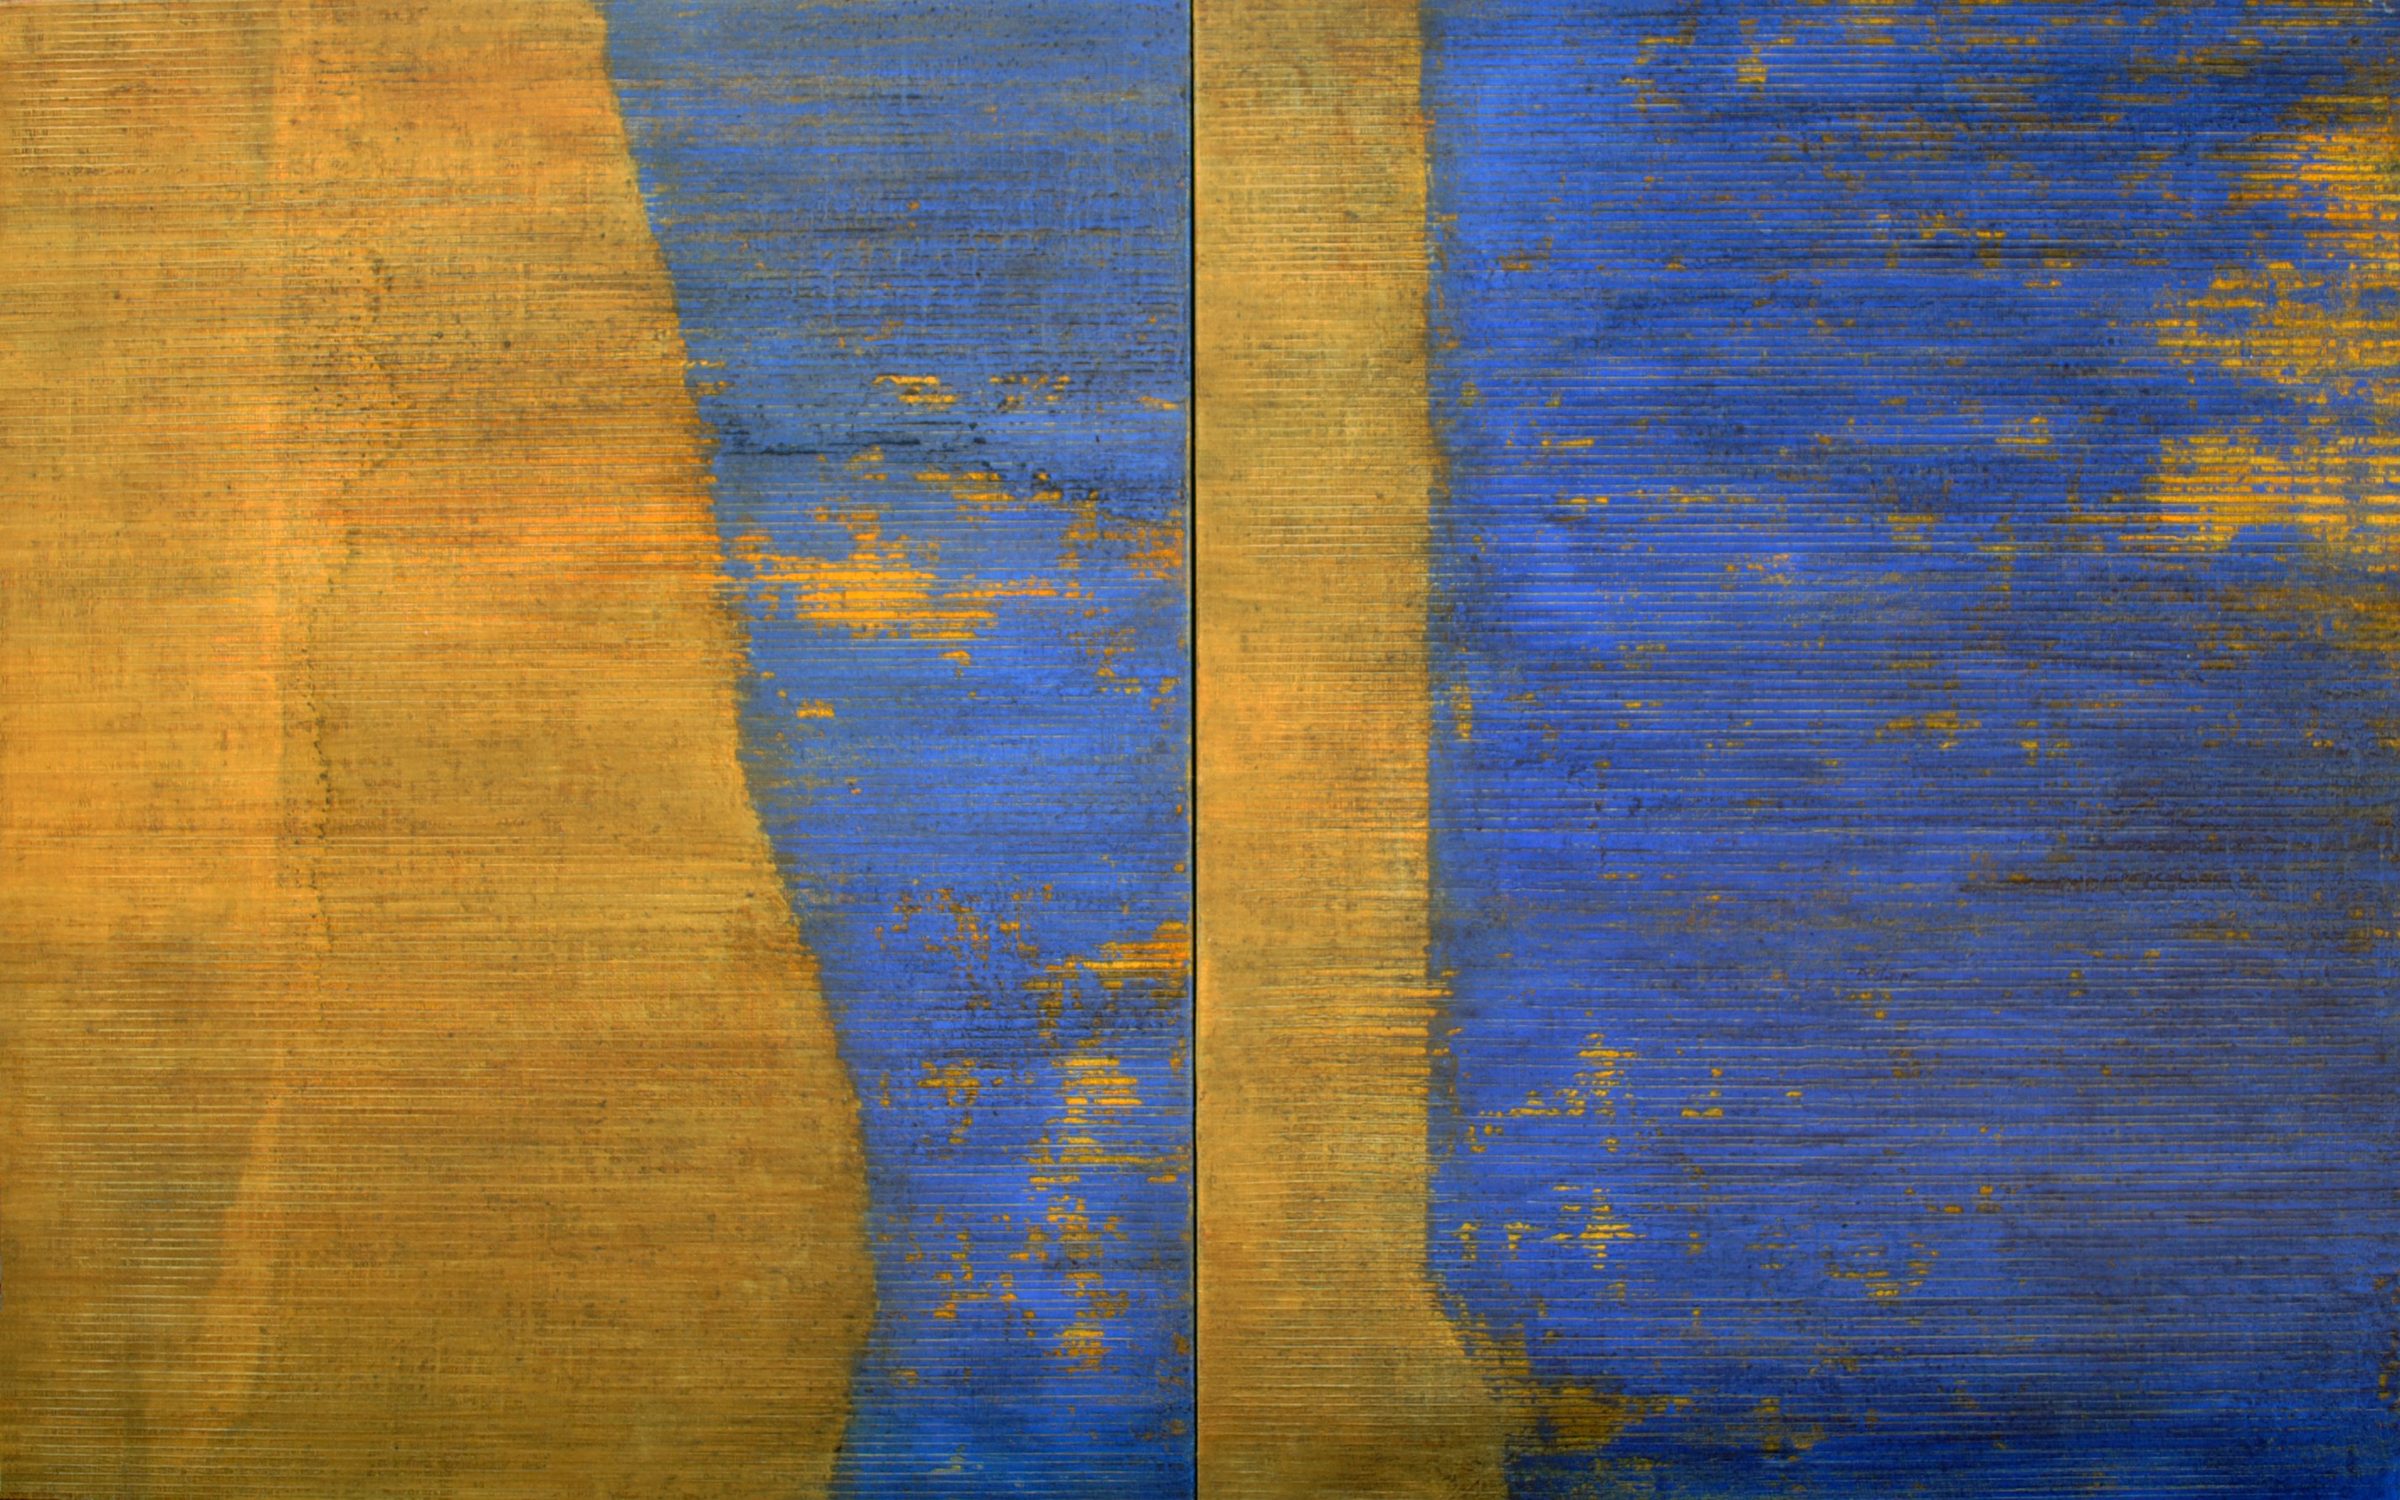 Linea Terminale: 4.12, 2012, Oil on linen over panels, 20 x 36 inches.